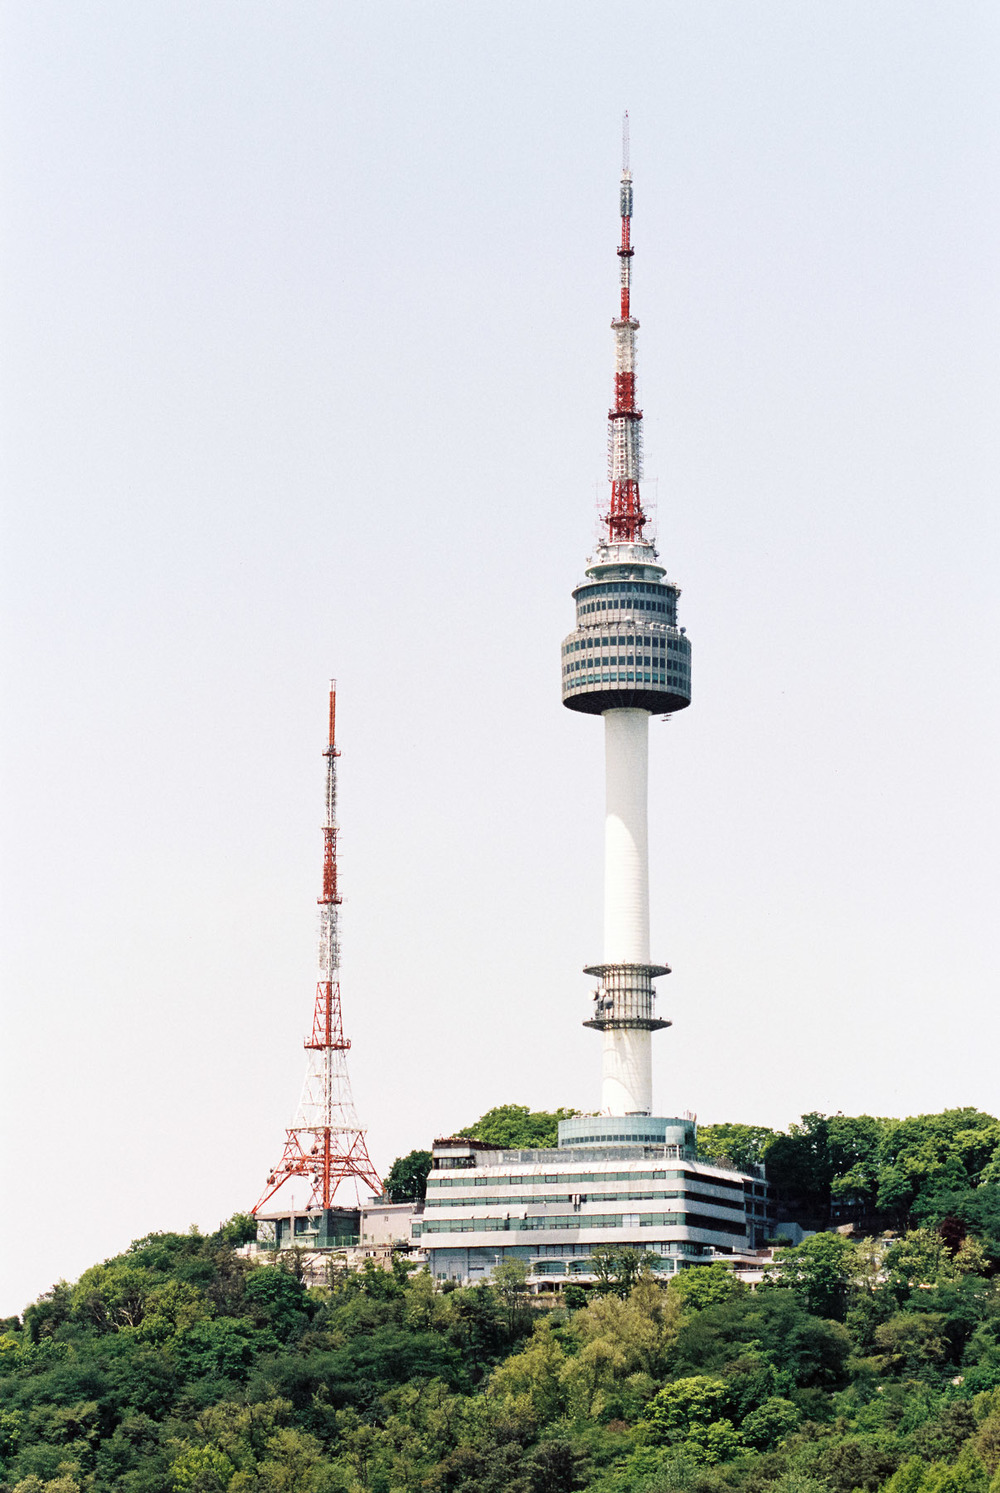 Seoul Tower, Korea - Kodak Portra 400